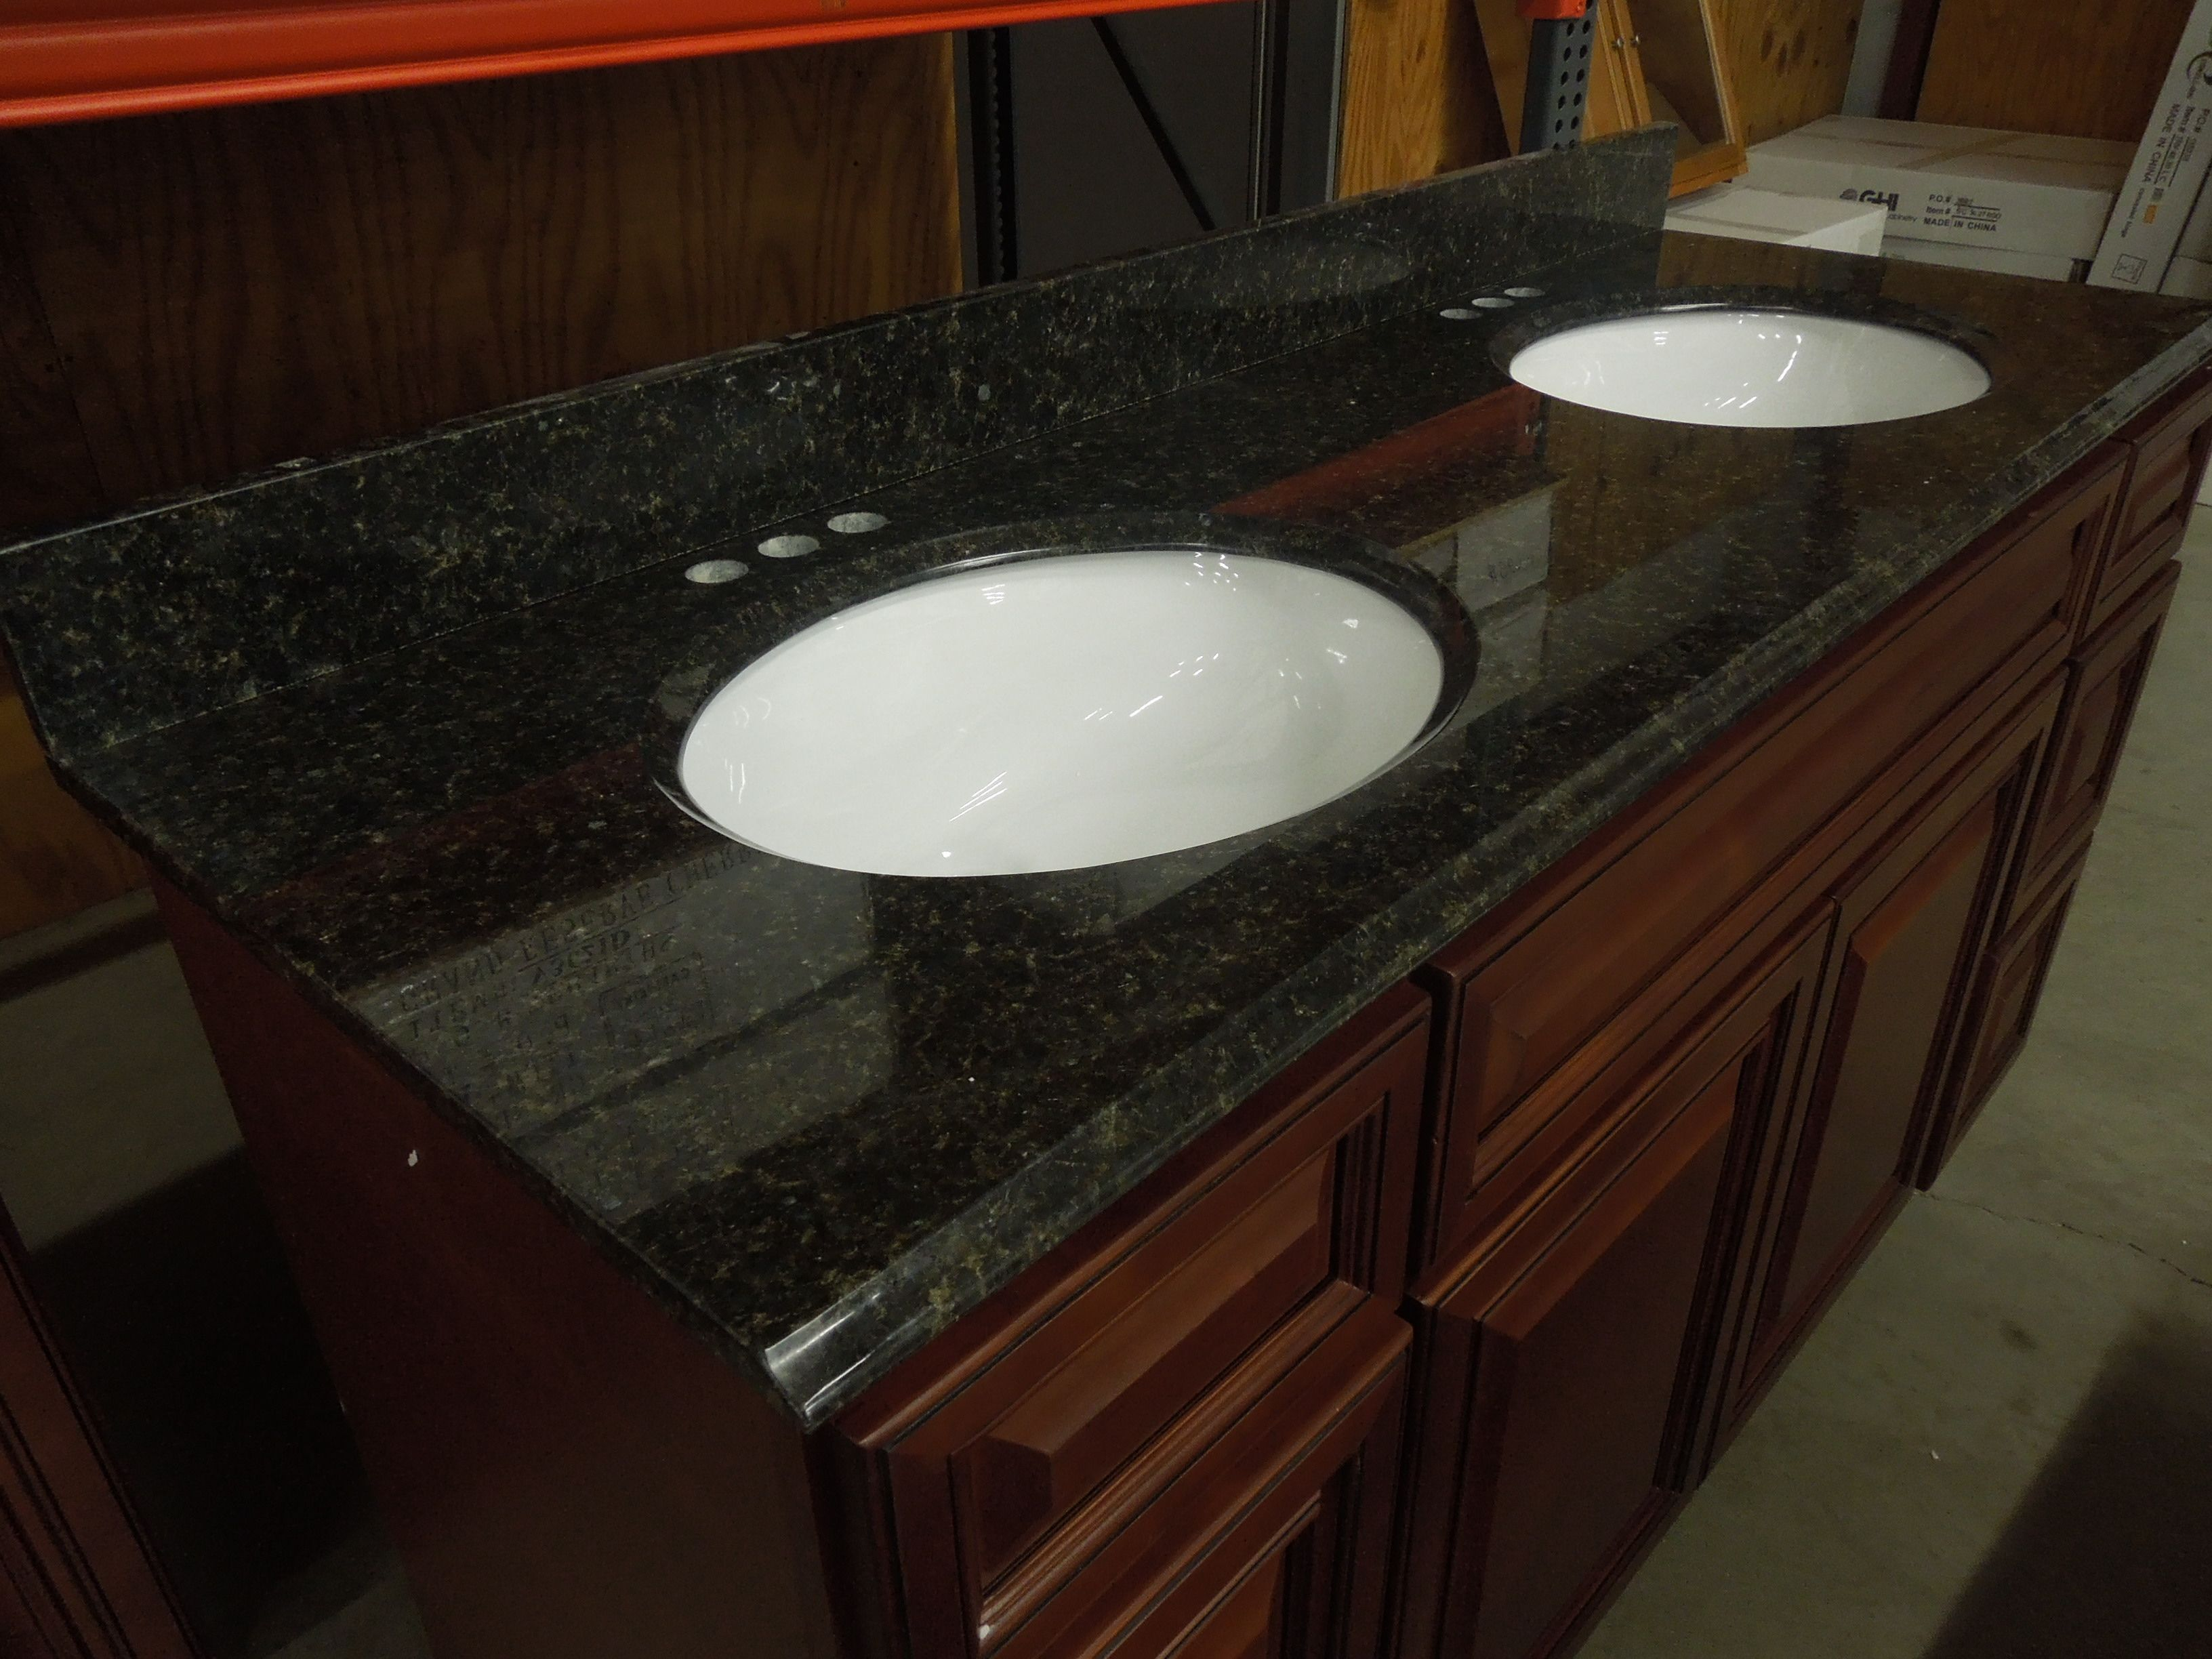 Elegant Uba Tuba Granite Countertop For Main Bath In 2020 Modern